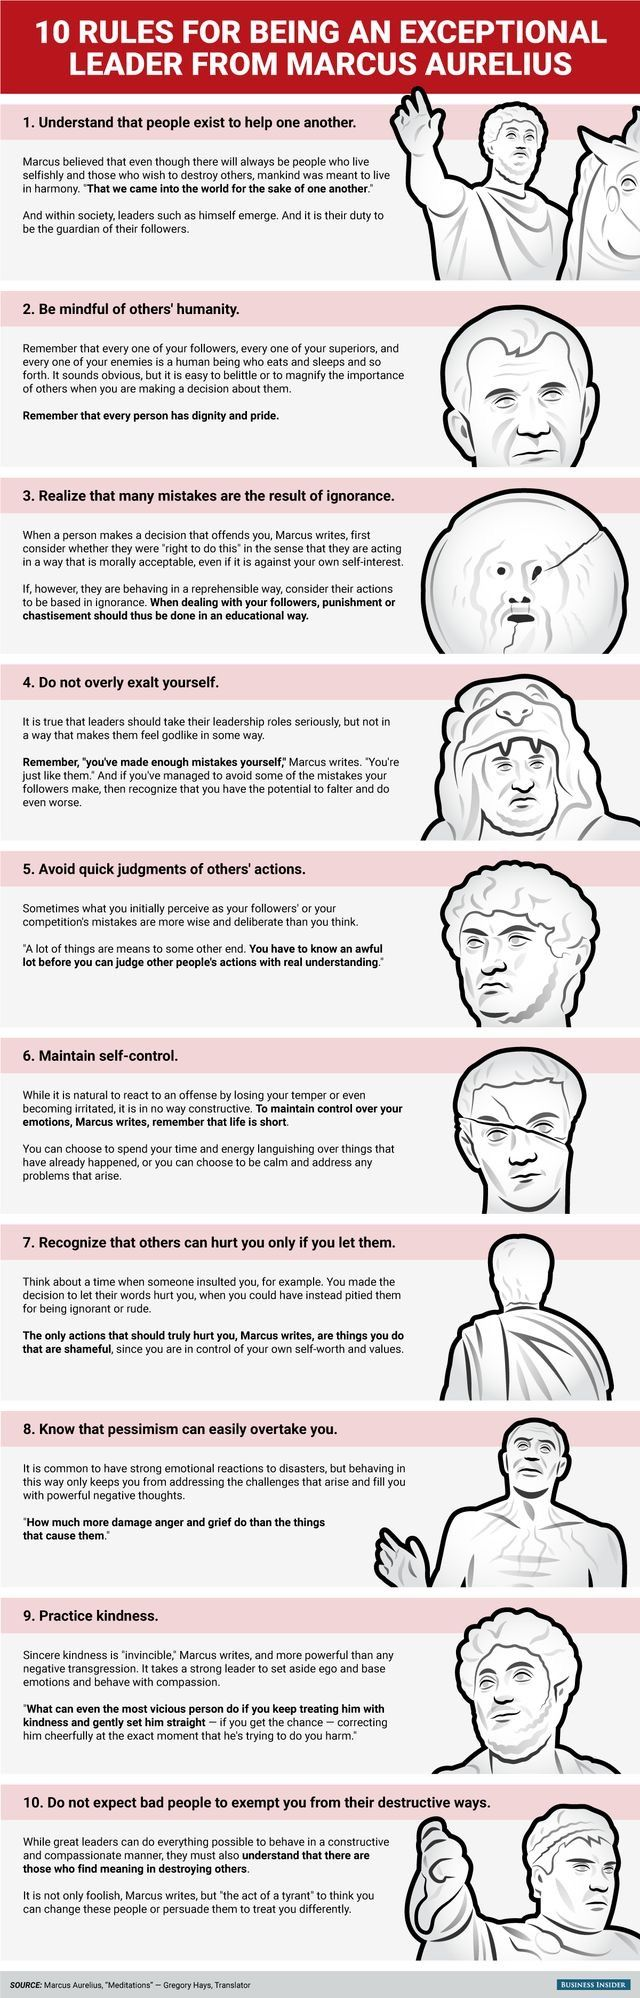 10 rules for being an exceptional leader from Marcus Aurelius